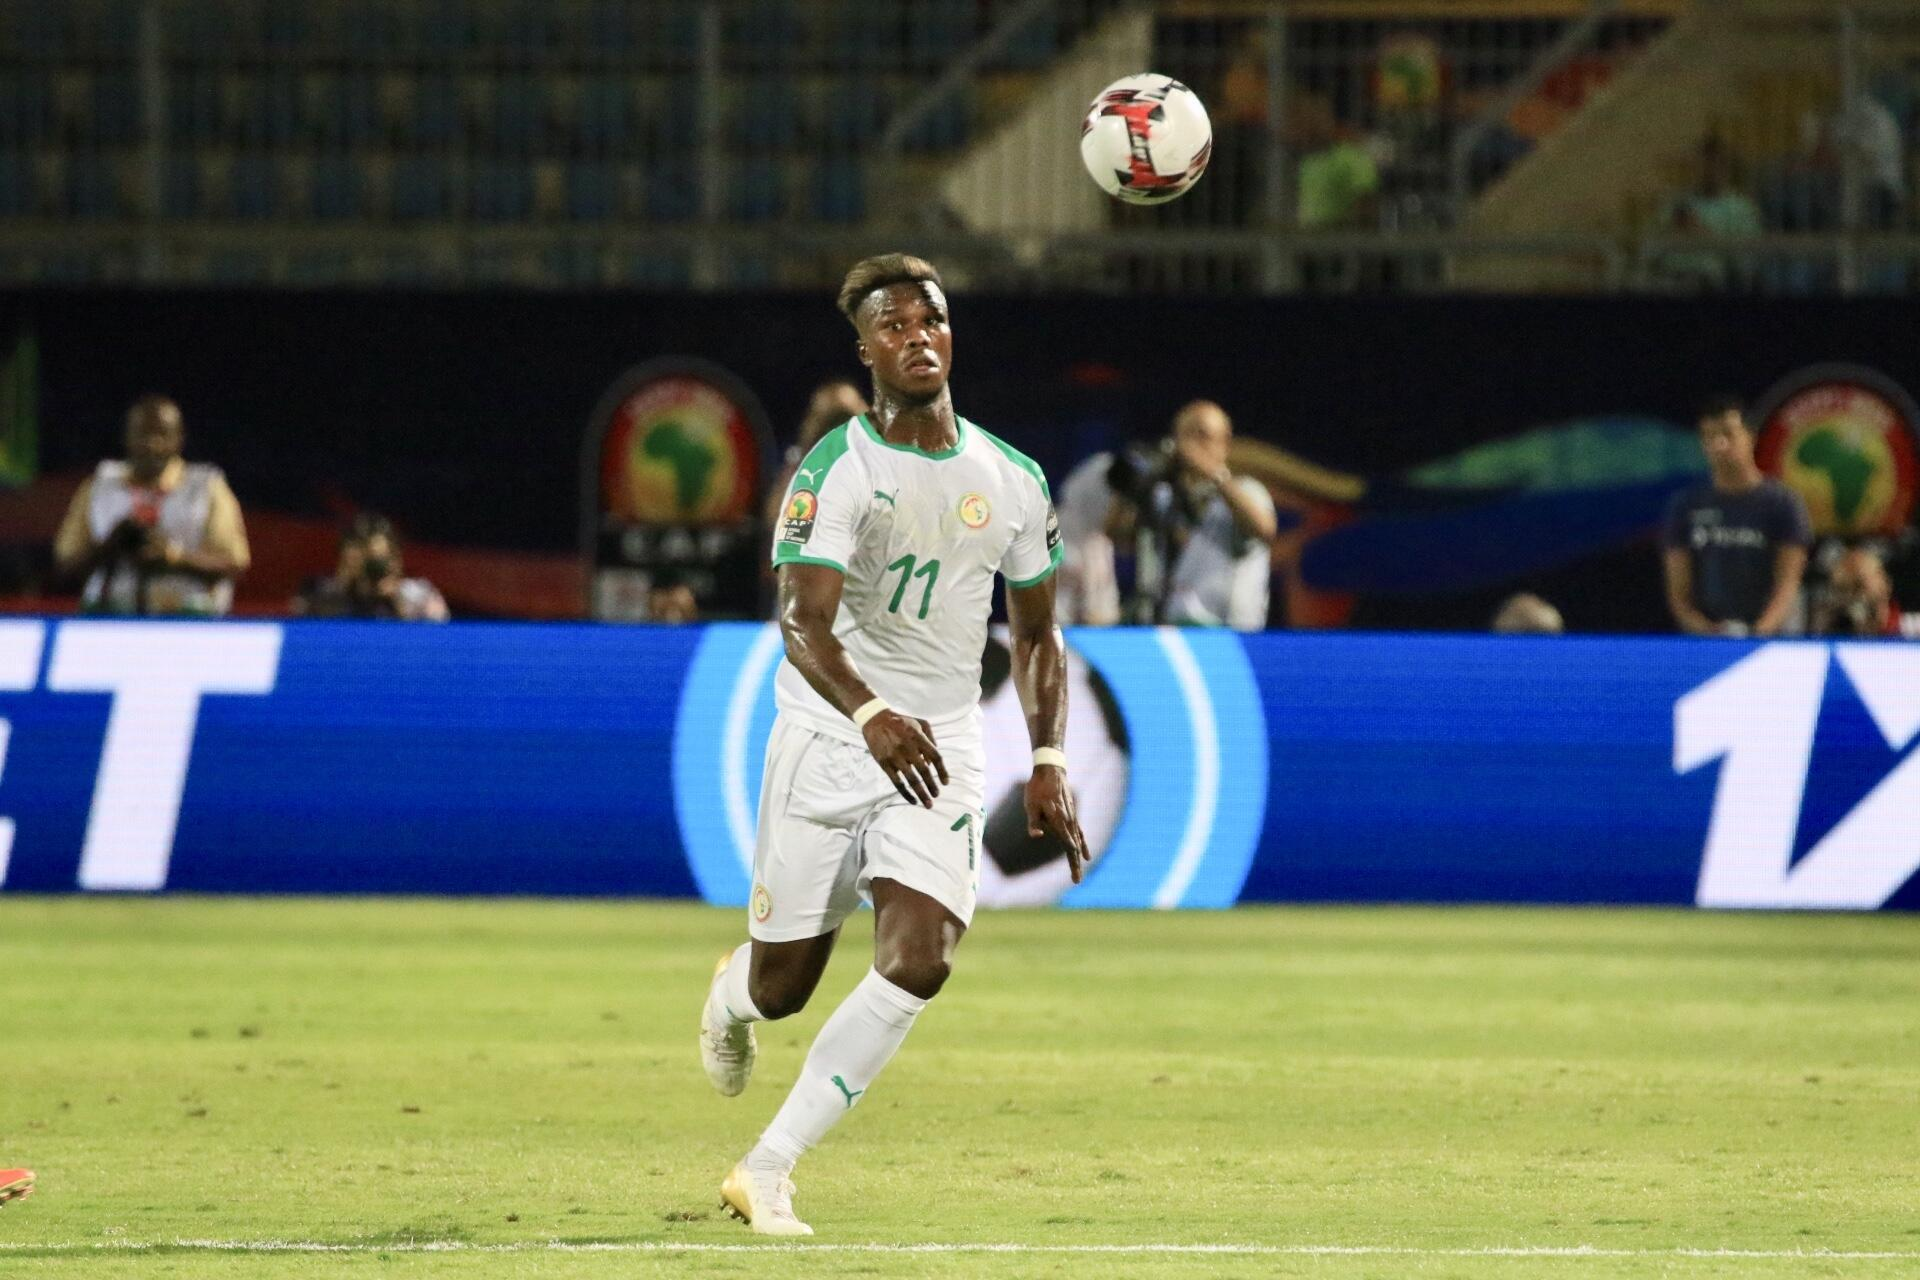 Keita Balde scored Senegal's first goal in the 2019 Africa Cup of Nations.